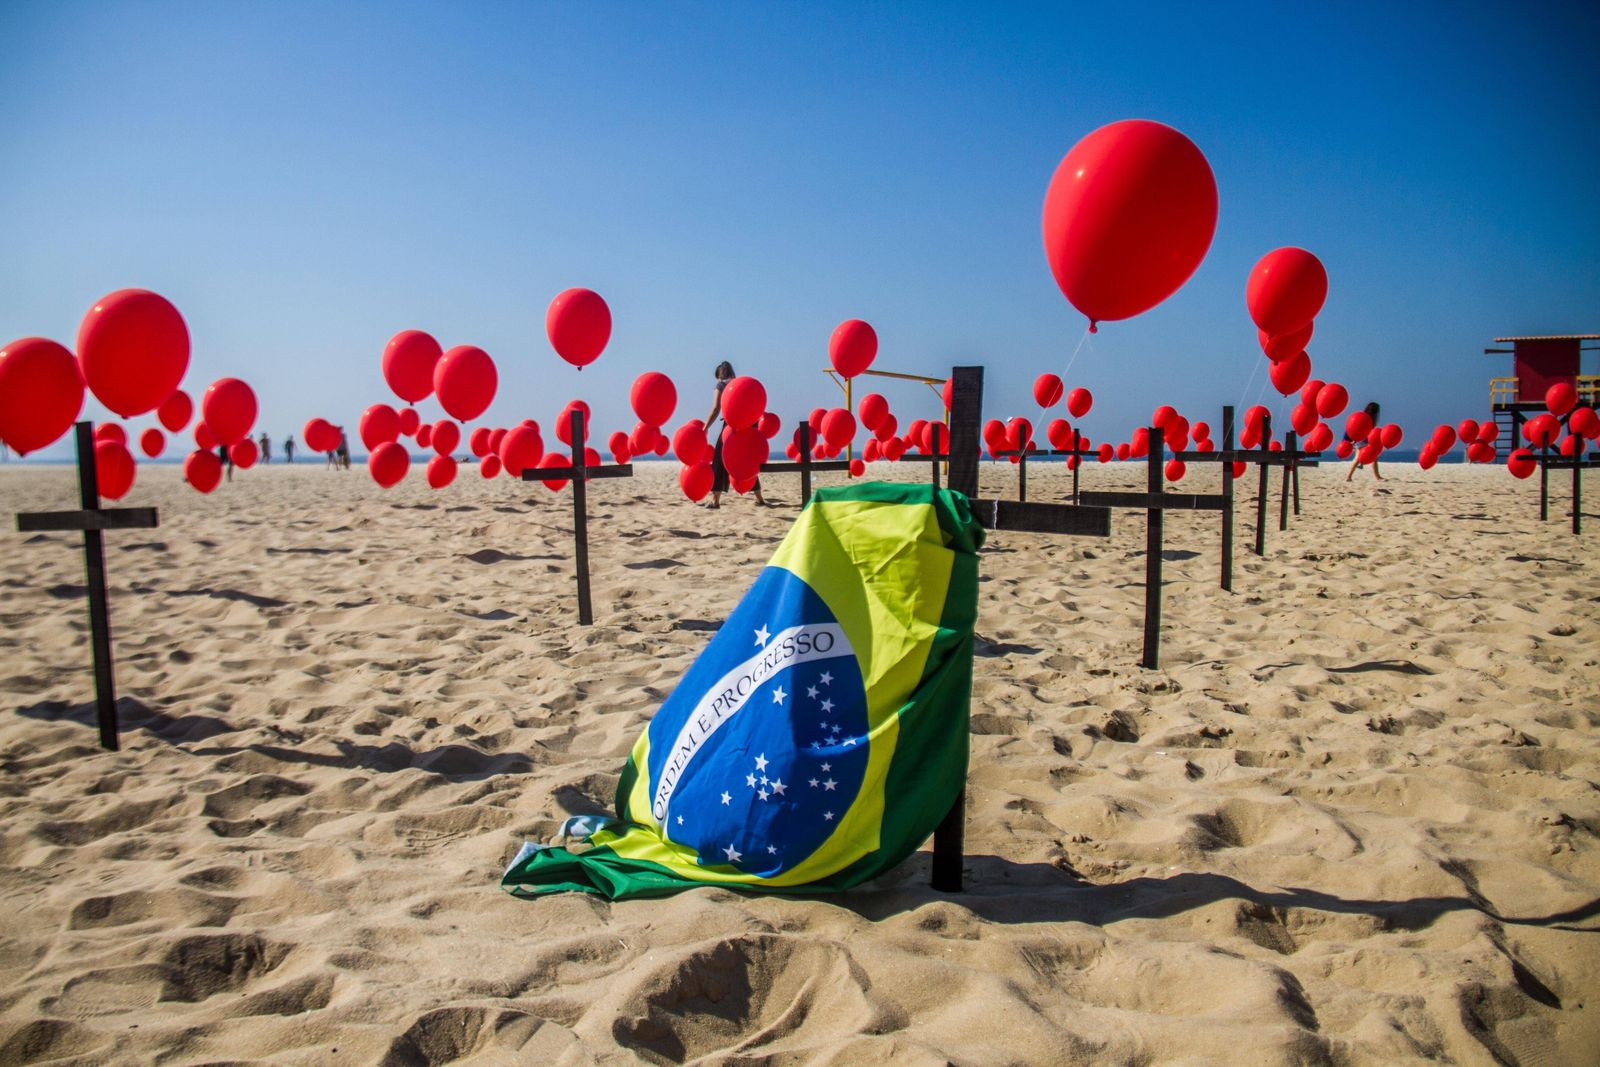 August 8, 2020: BRAZIL: RIO DE JANEIRO; August 8, 2020; COVID-19 The NGO Rio de Paz protests with several red balloons